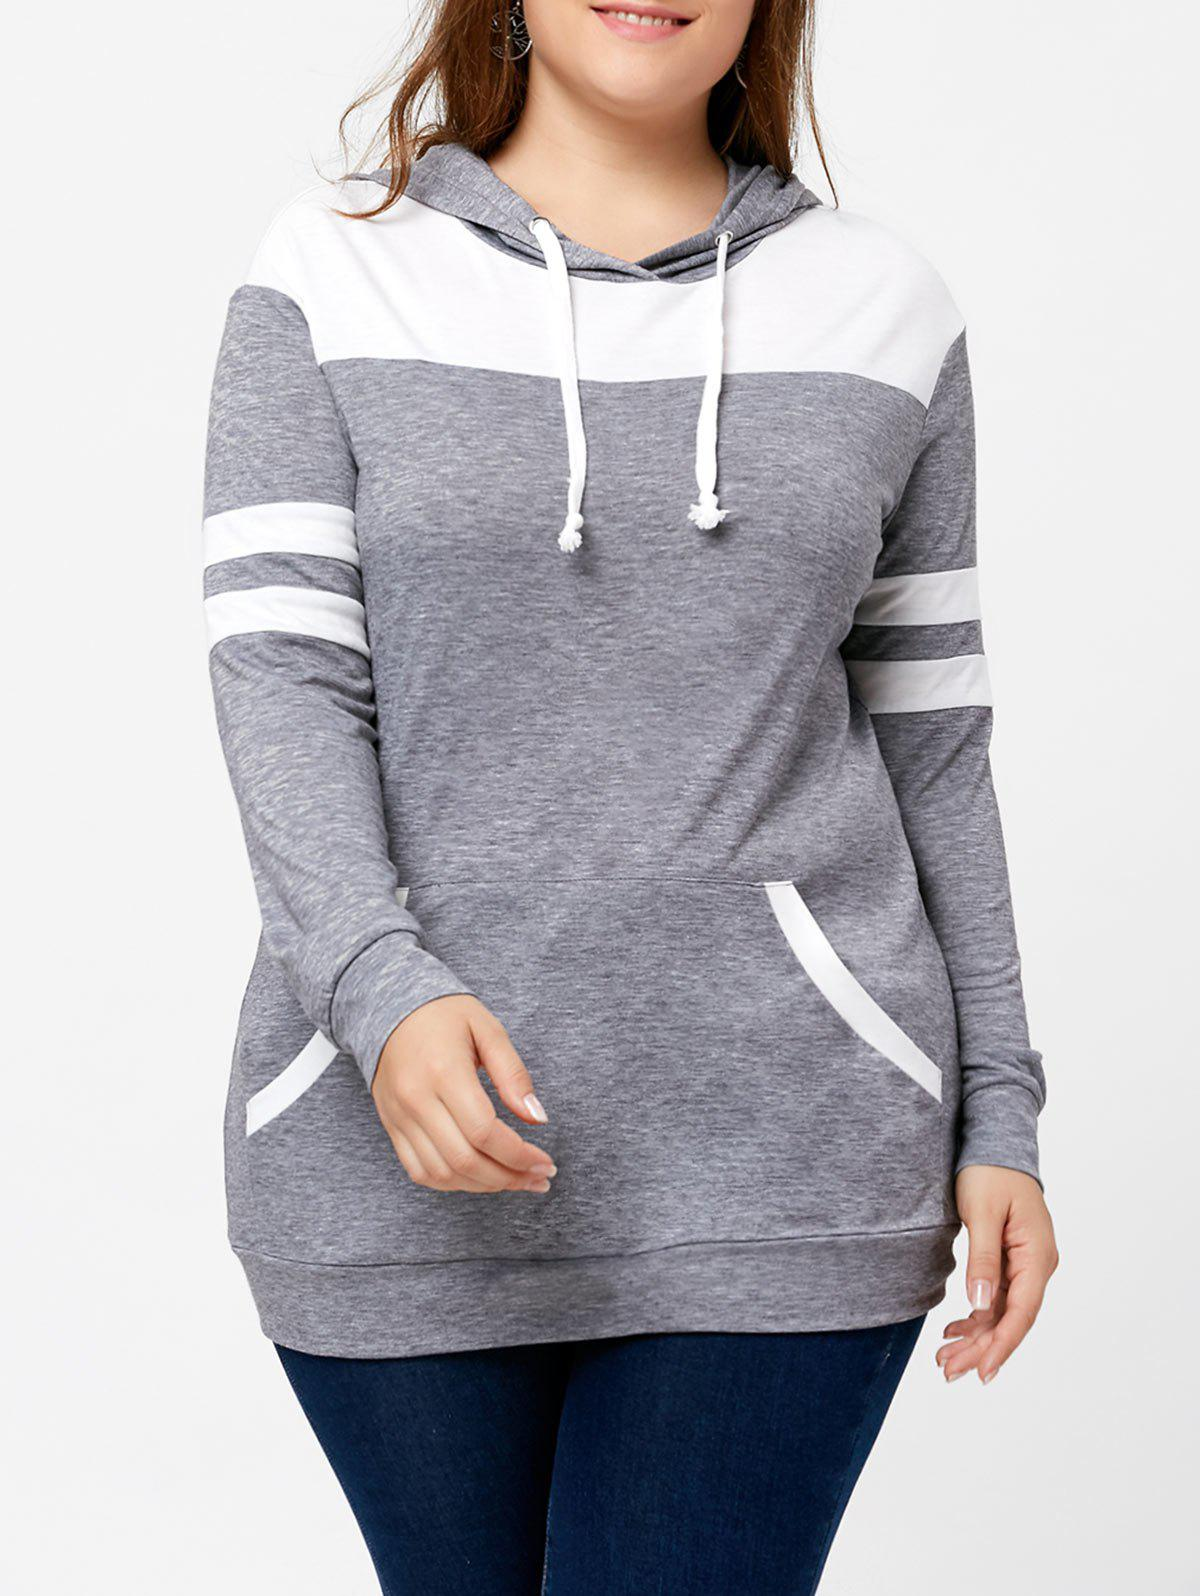 Plus Size Pullover Kangaroo Pocket Two Tone HoodieWOMEN<br><br>Size: 4XL; Color: GREY AND WHITE; Material: Cotton,Polyester; Shirt Length: Long; Sleeve Length: Full; Style: Casual; Pattern Style: Others; Embellishment: Front Pocket; Season: Fall,Spring; Weight: 0.3900kg; Package Contents: 1 x Hoodie;